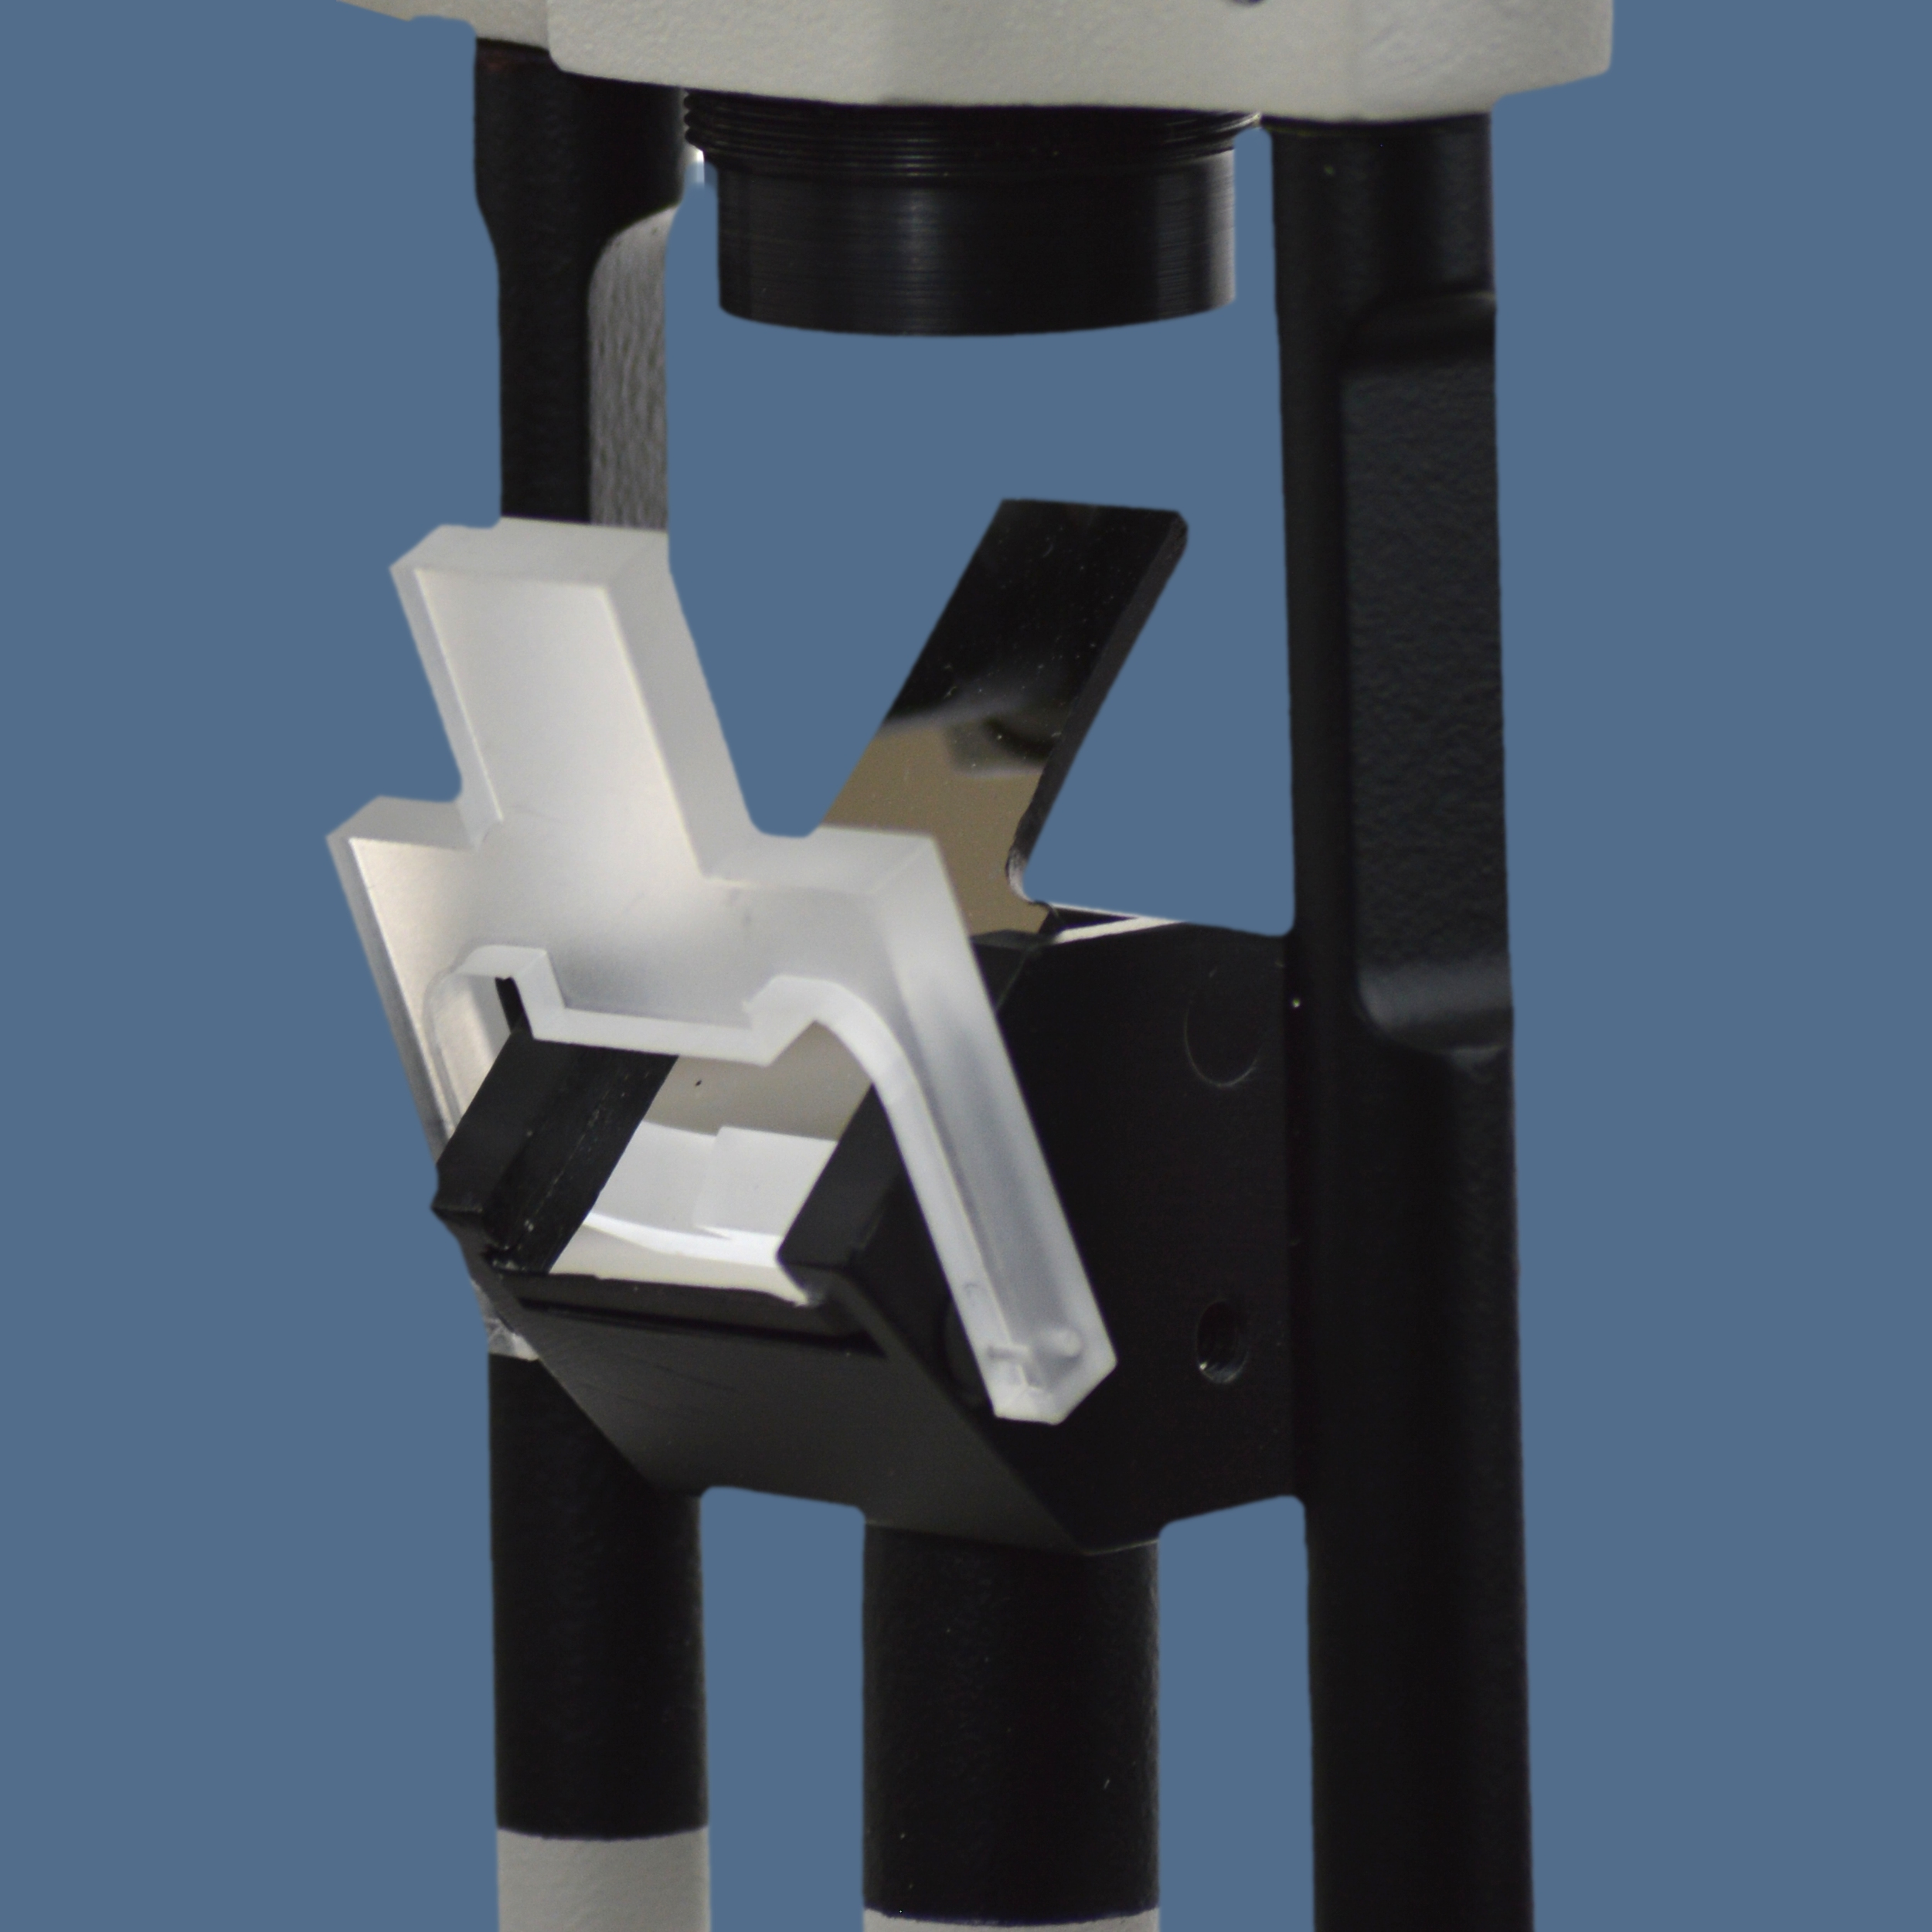 Led ophthalmology slit lamp optical system and microscopy for sale tilt and slit decentration aloadofball Choice Image